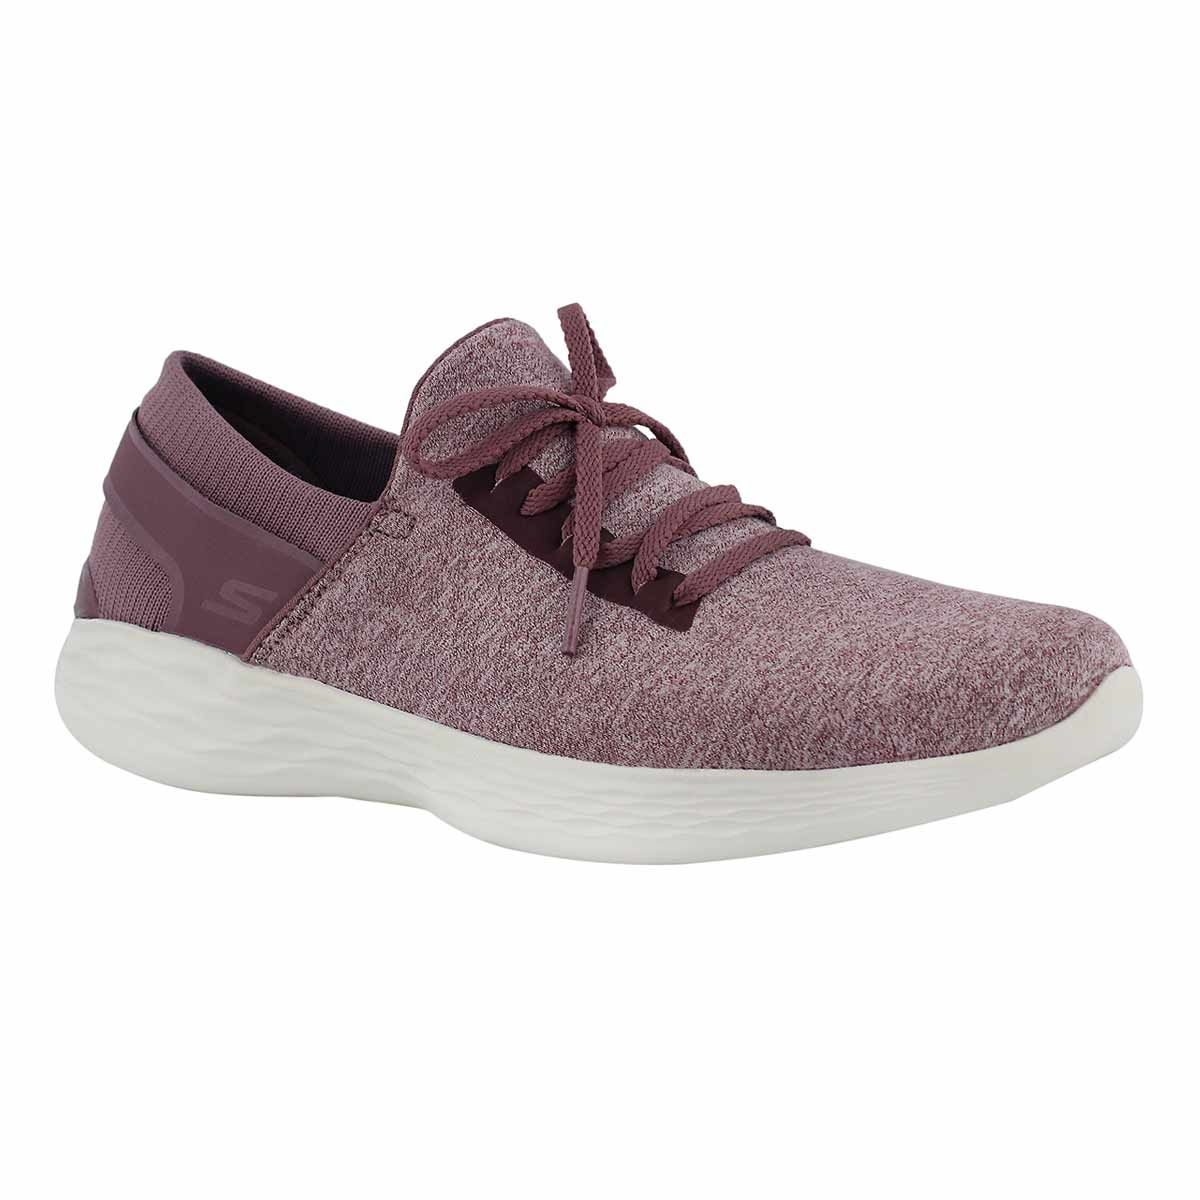 Women's YOU mauve slip on decorative lace sneakers